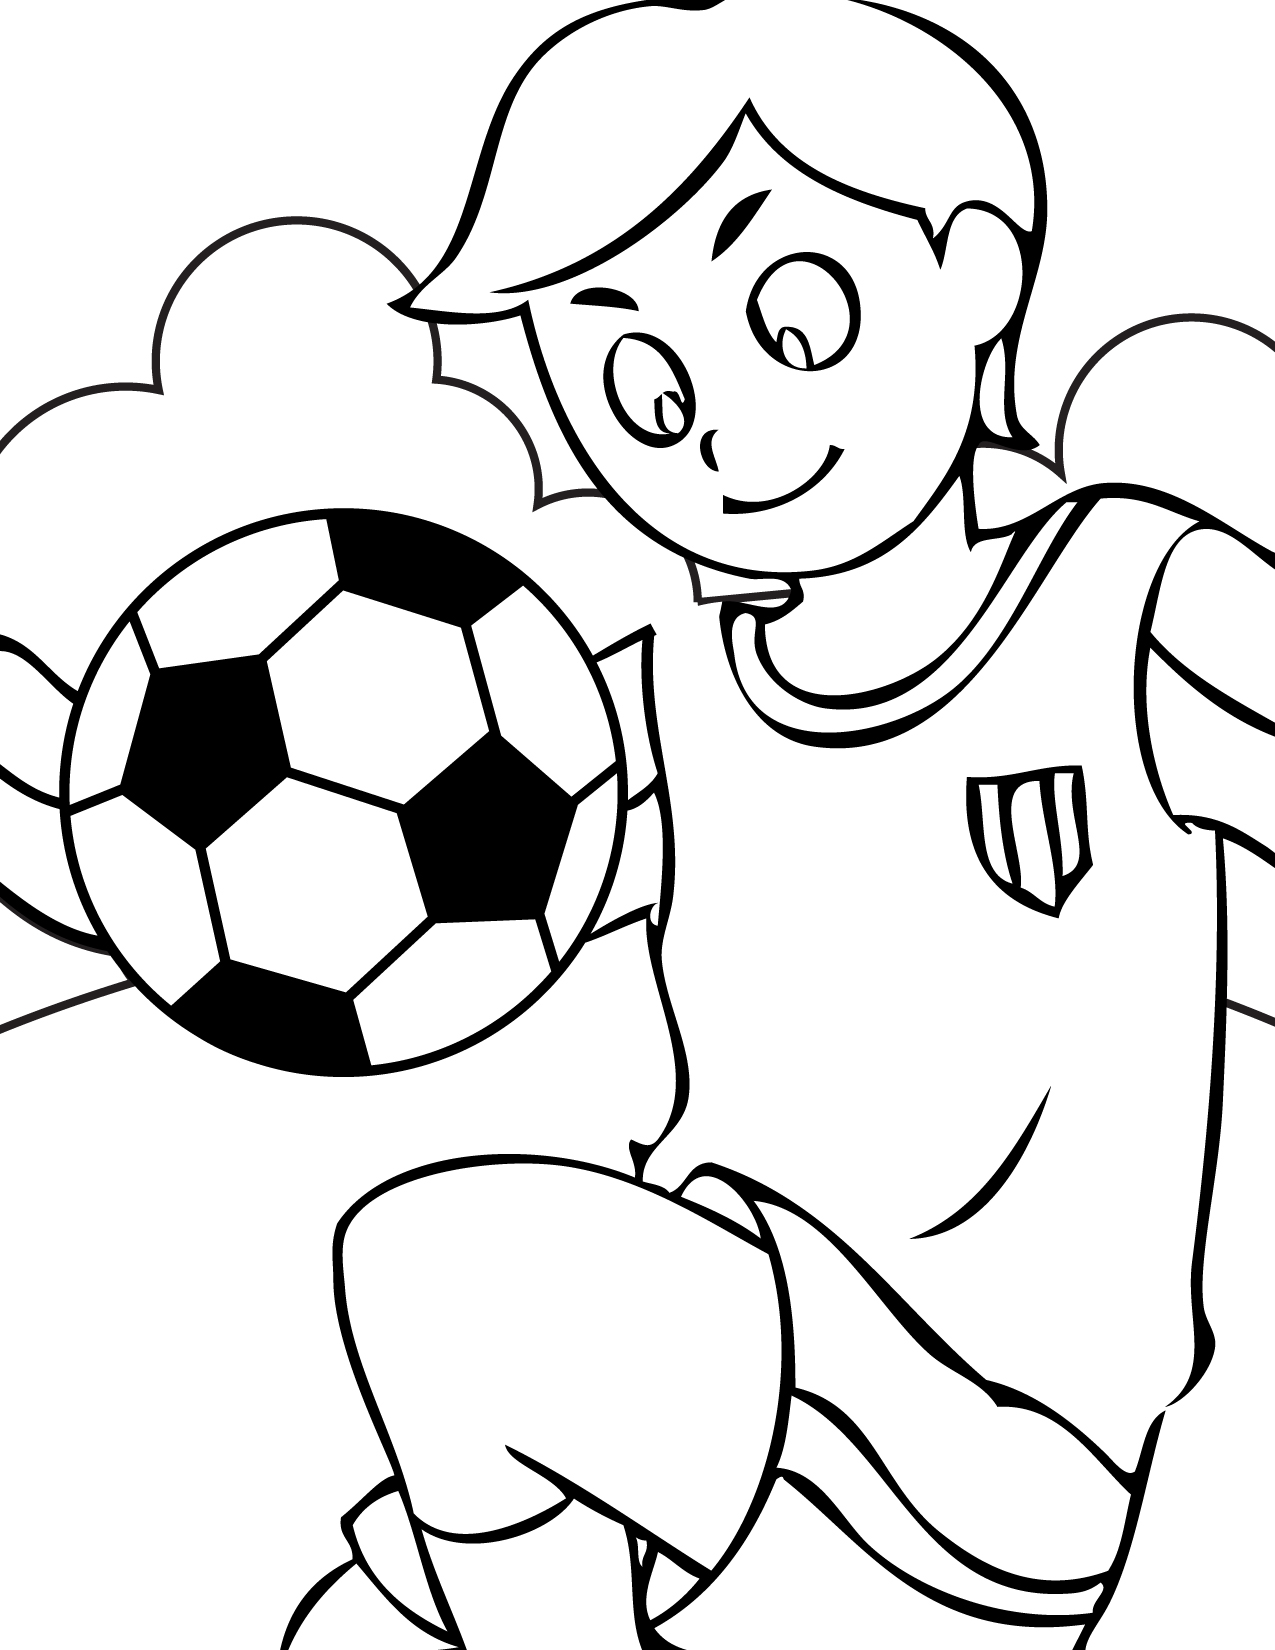 soccer pictures to color soccer free to color for kids soccer kids coloring pages to color soccer pictures